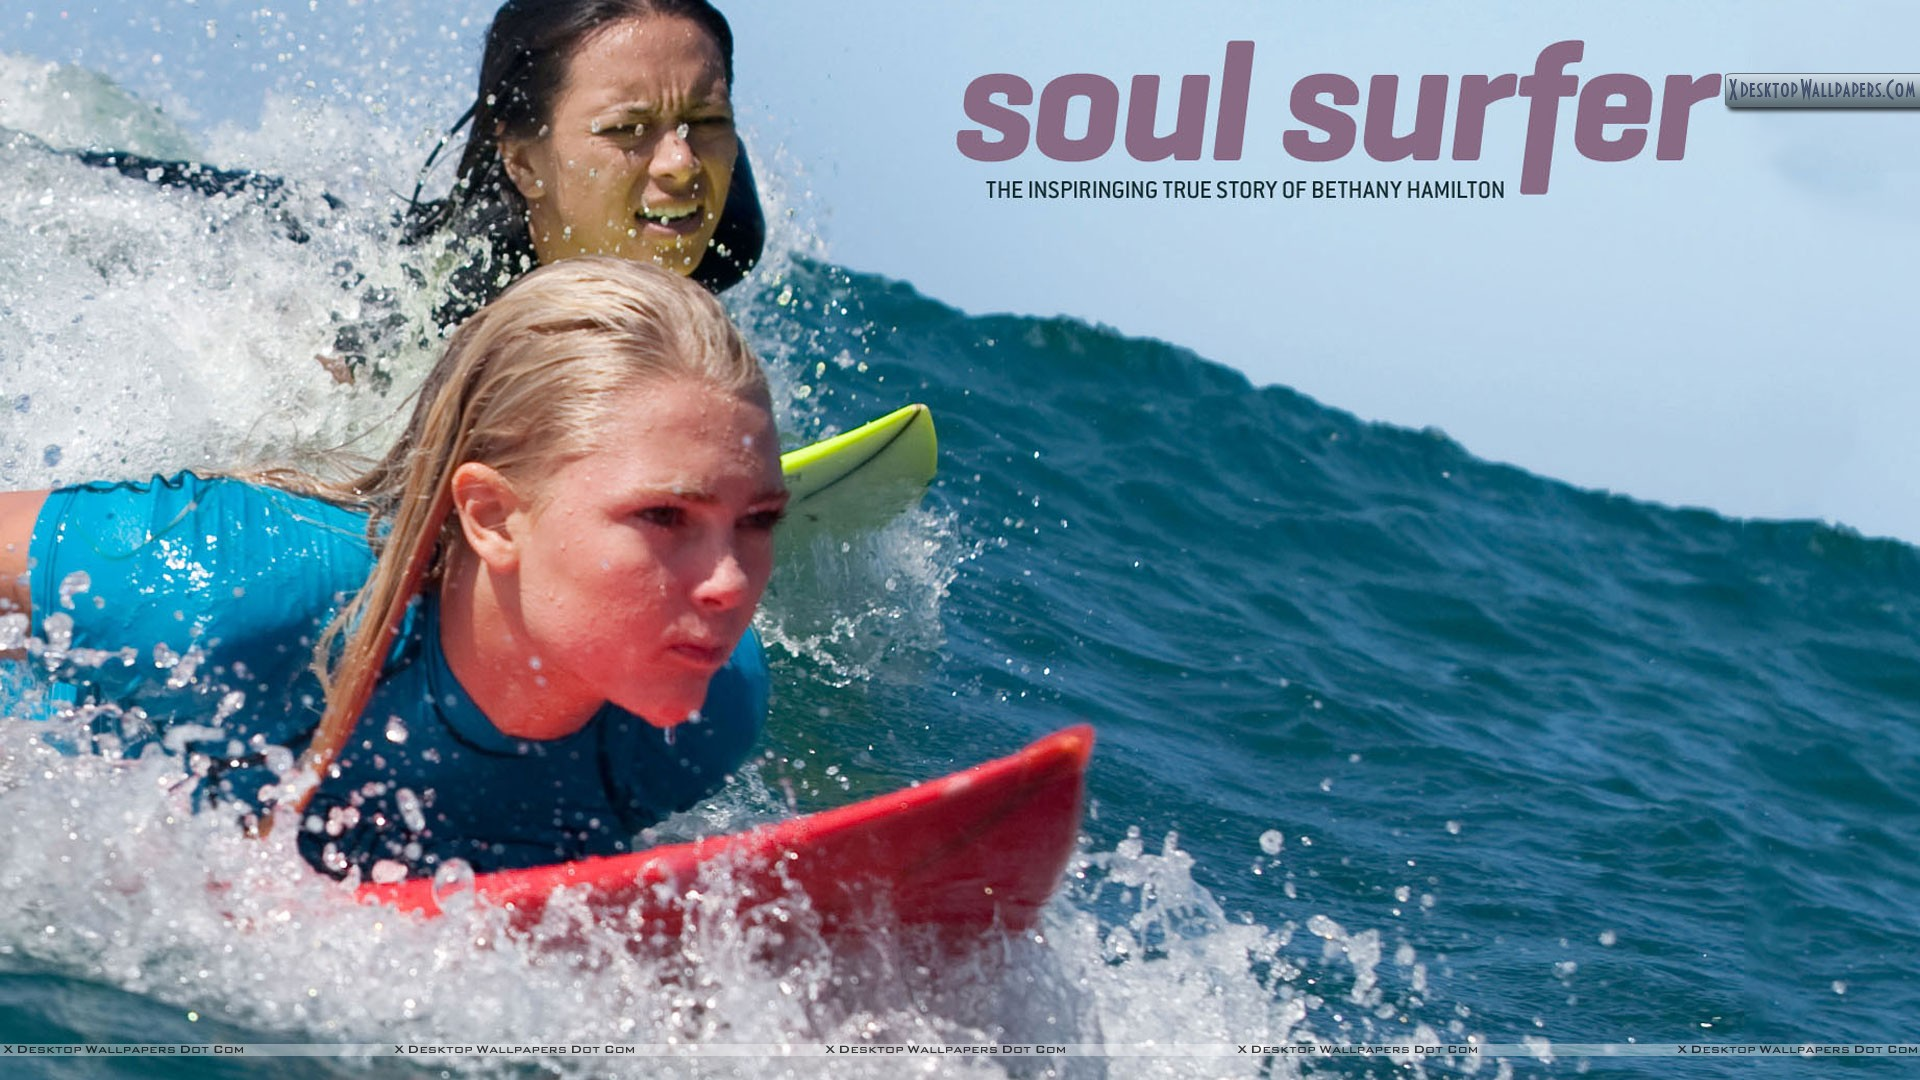 Soul Surfer Wallpapers, Photos & Images in HD